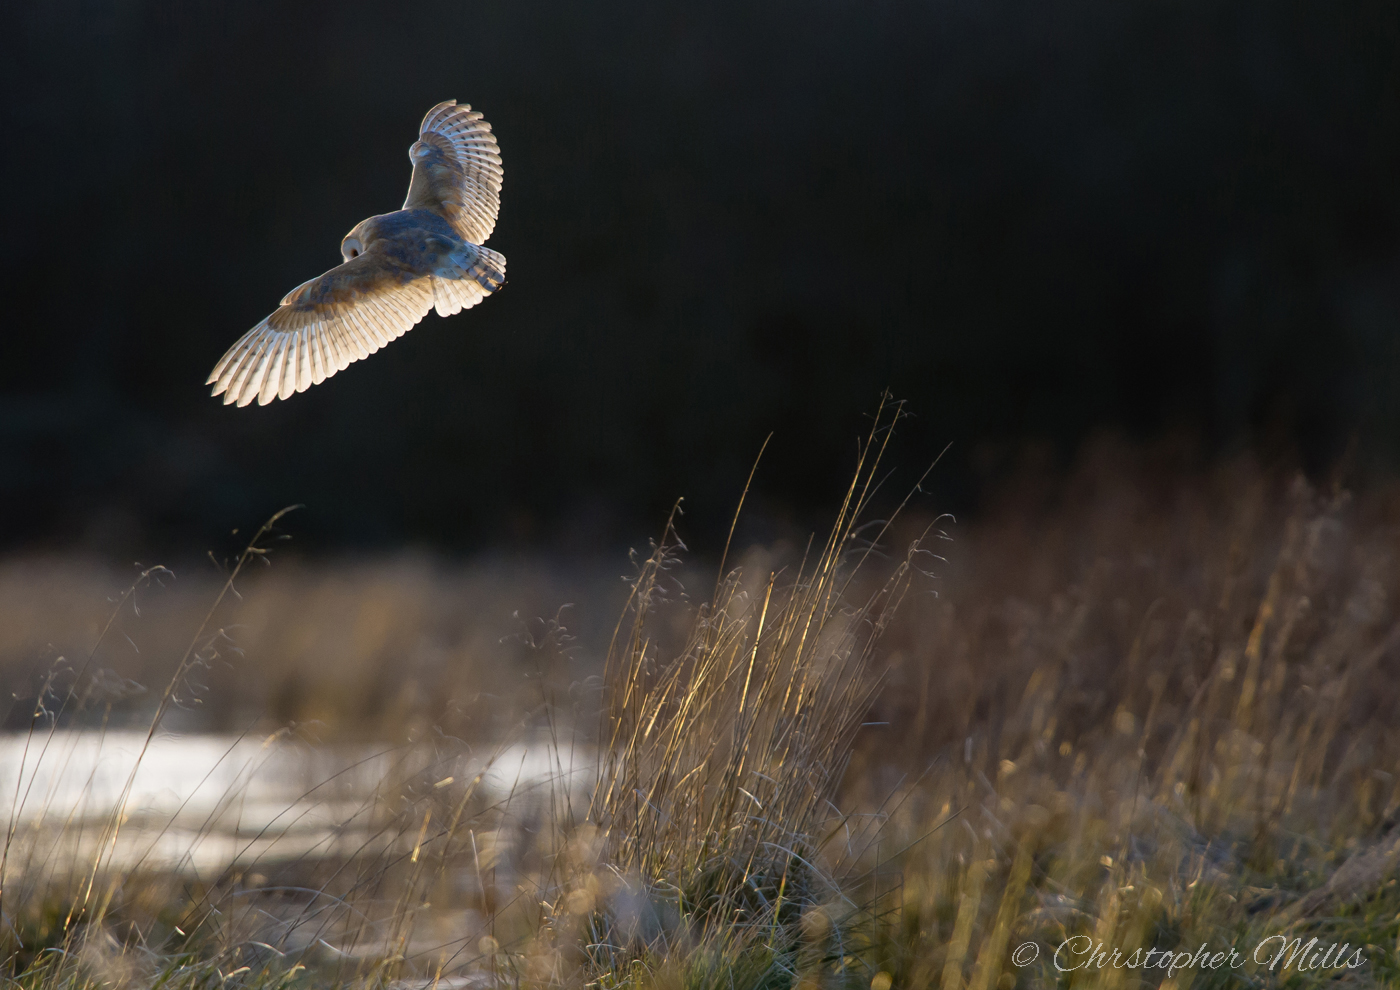 A Barn Owl hunting.